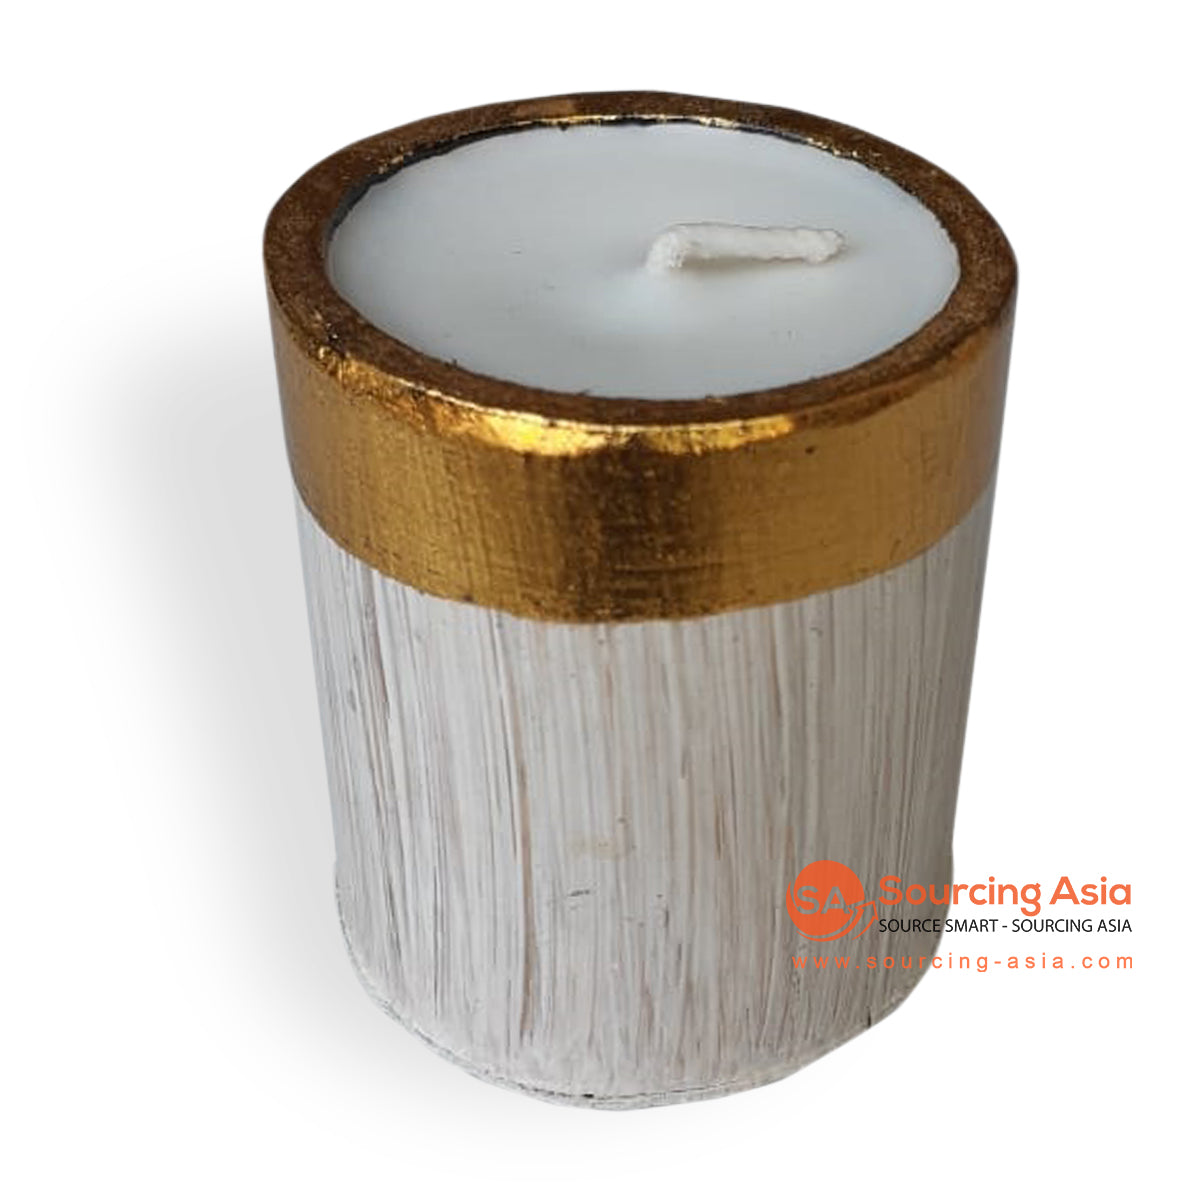 BSC017-1 CANDLE HOLDER